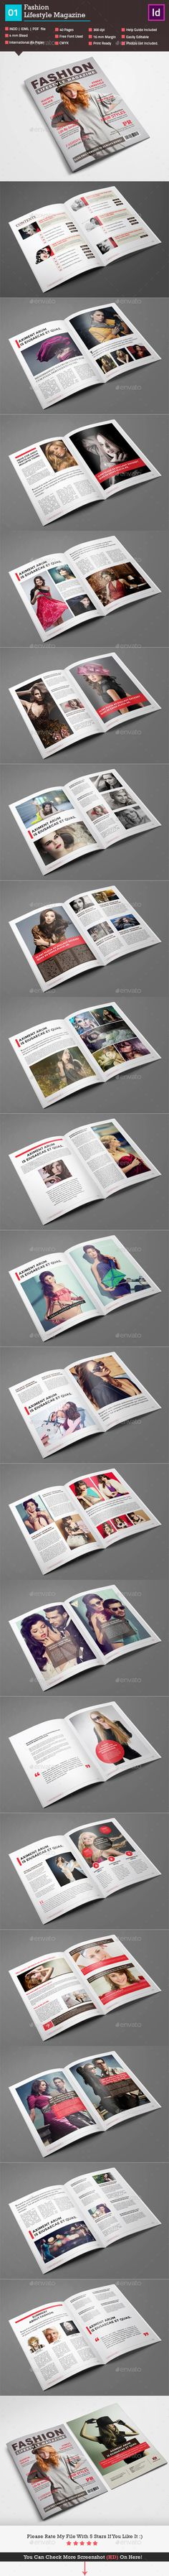 Fashion Lifestyle Magazine_Indesign 40 Page_V1 by akilmazumder Live Preview:Preview Here Specification:Adobe Indesign Files INDD, IDML, PDF files Version CS4 Or Later Print Ready CMYK Color,300